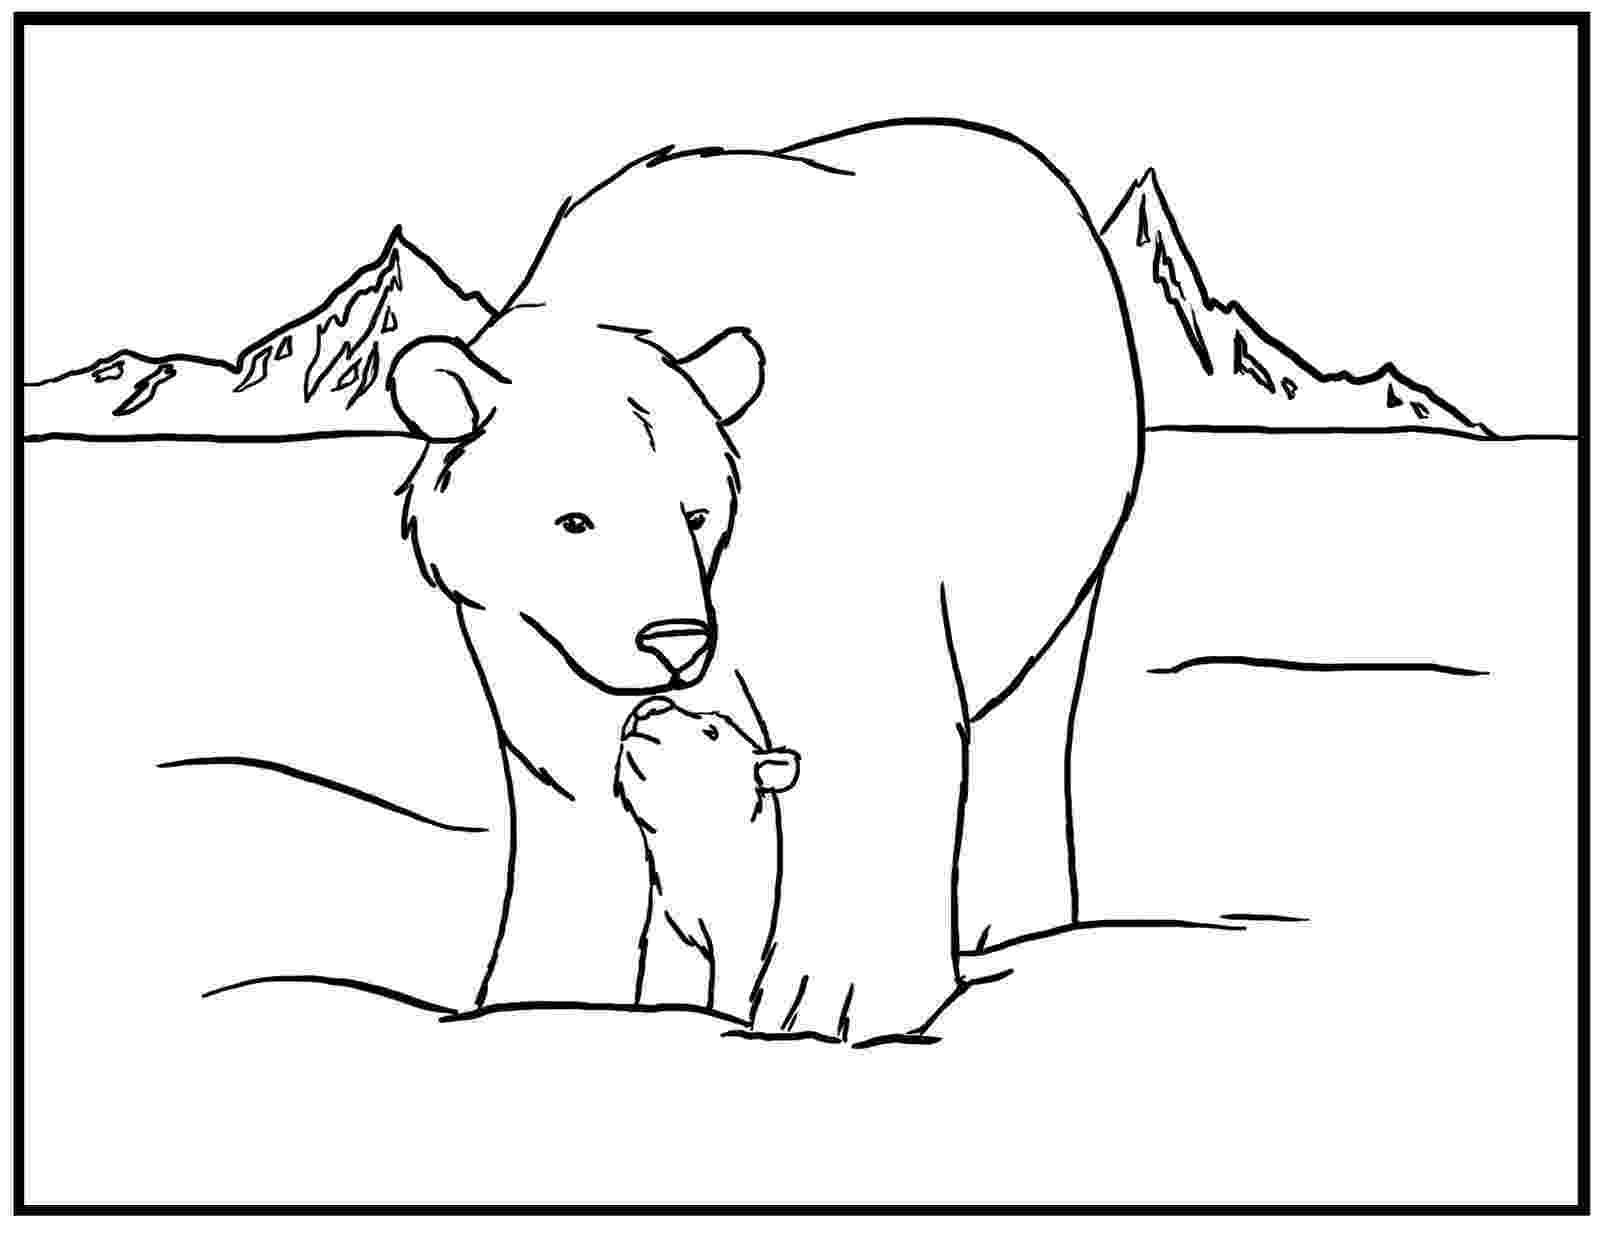 coloring page bear free printable bear coloring pages for kids bear page coloring